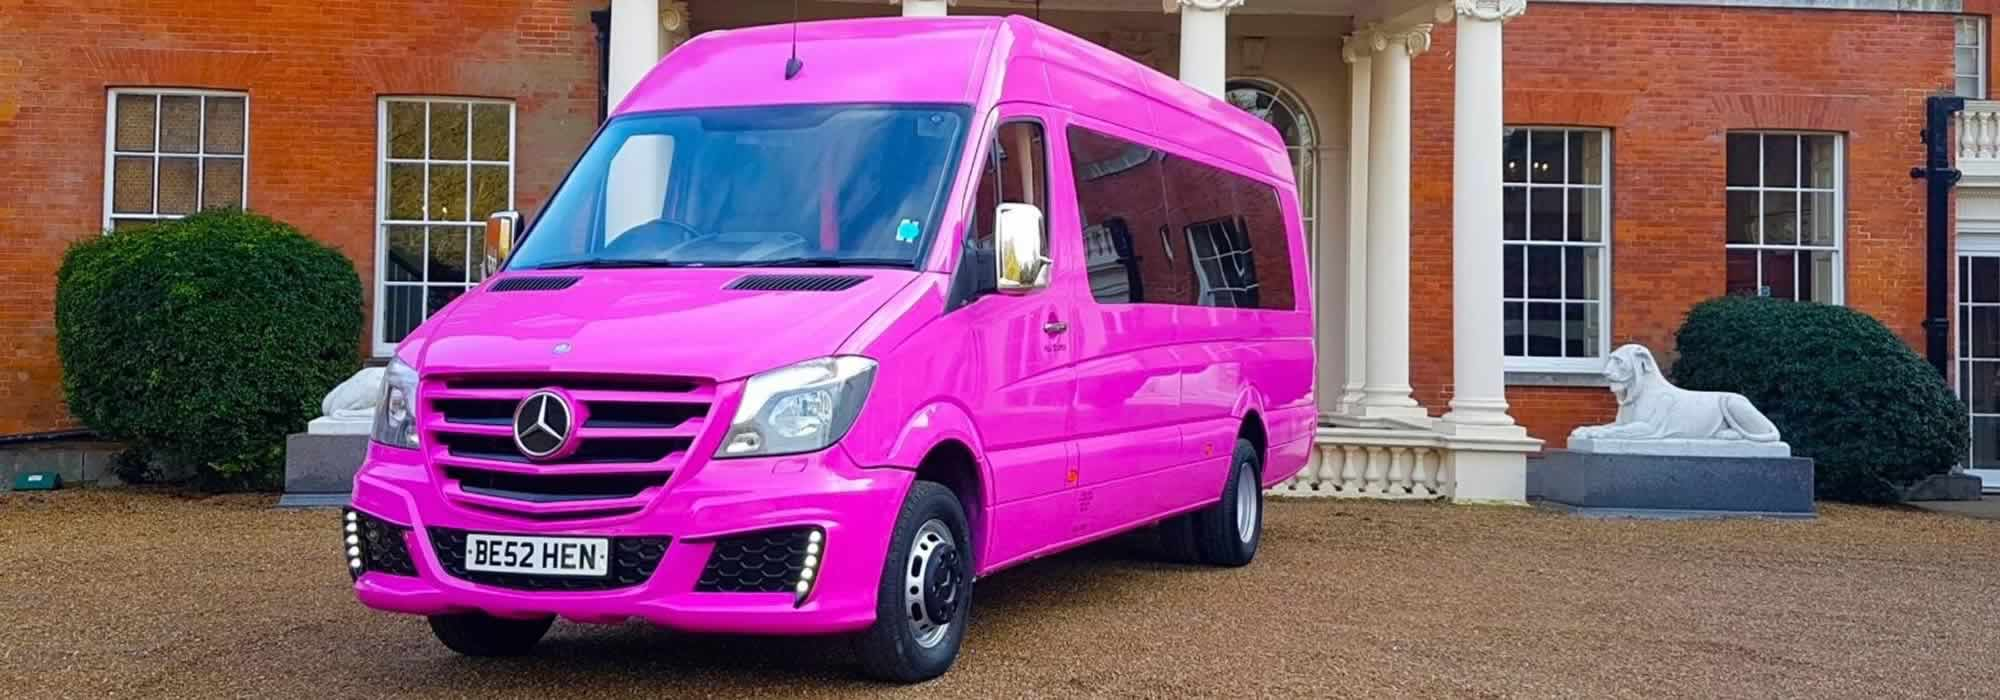 Pink Mercedes Party Bus | Limousines in London